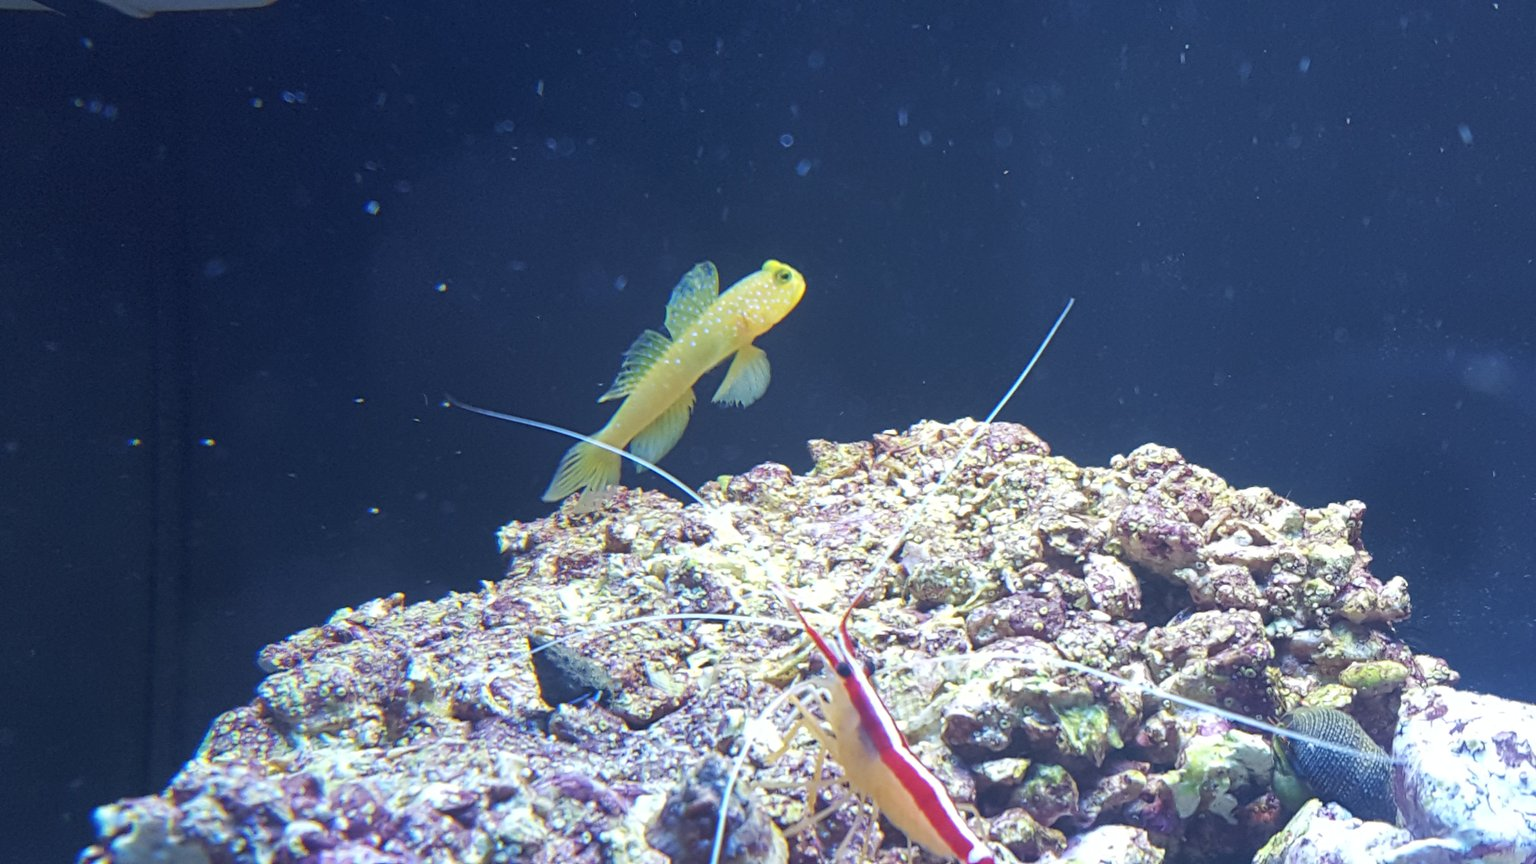 fish tank picture - Yellow watchmen goby and cleaner shrimp